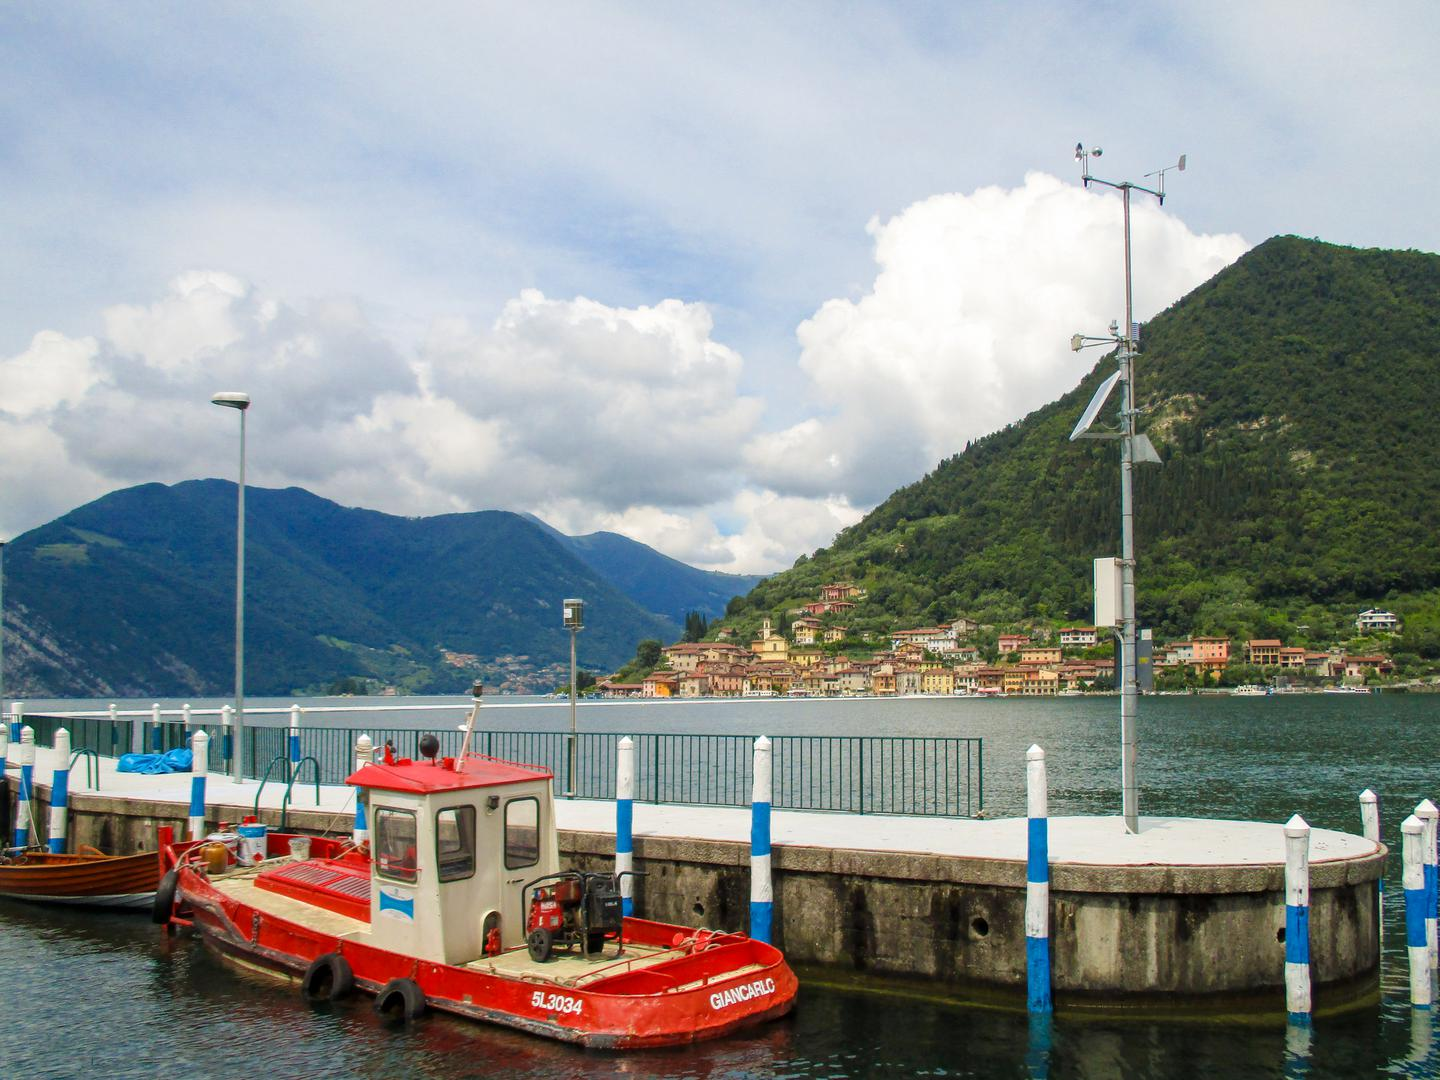 Stazione Meteo DigitEco Sulzano lago d'Iseo per The Floating Piers